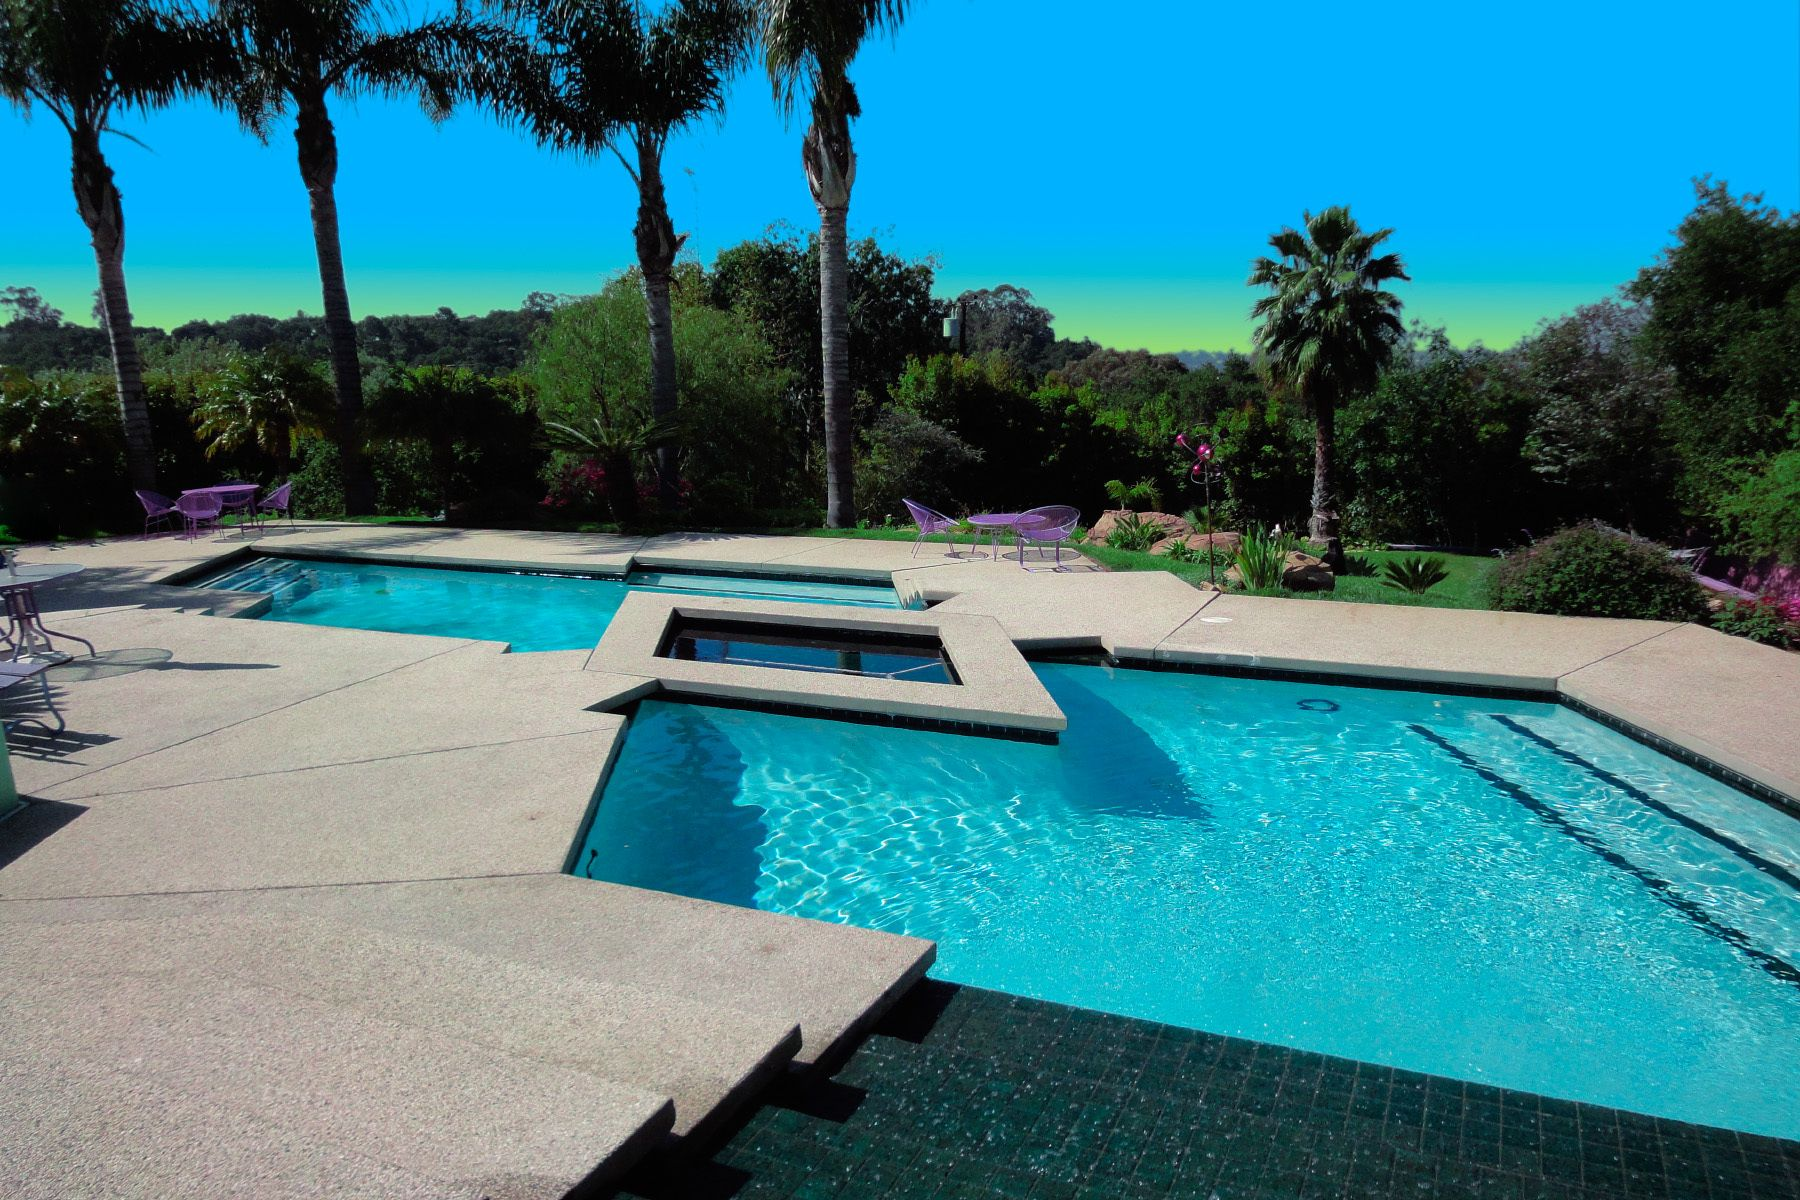 4_0_108_1hsh_gottlieb_pools_2.jpg